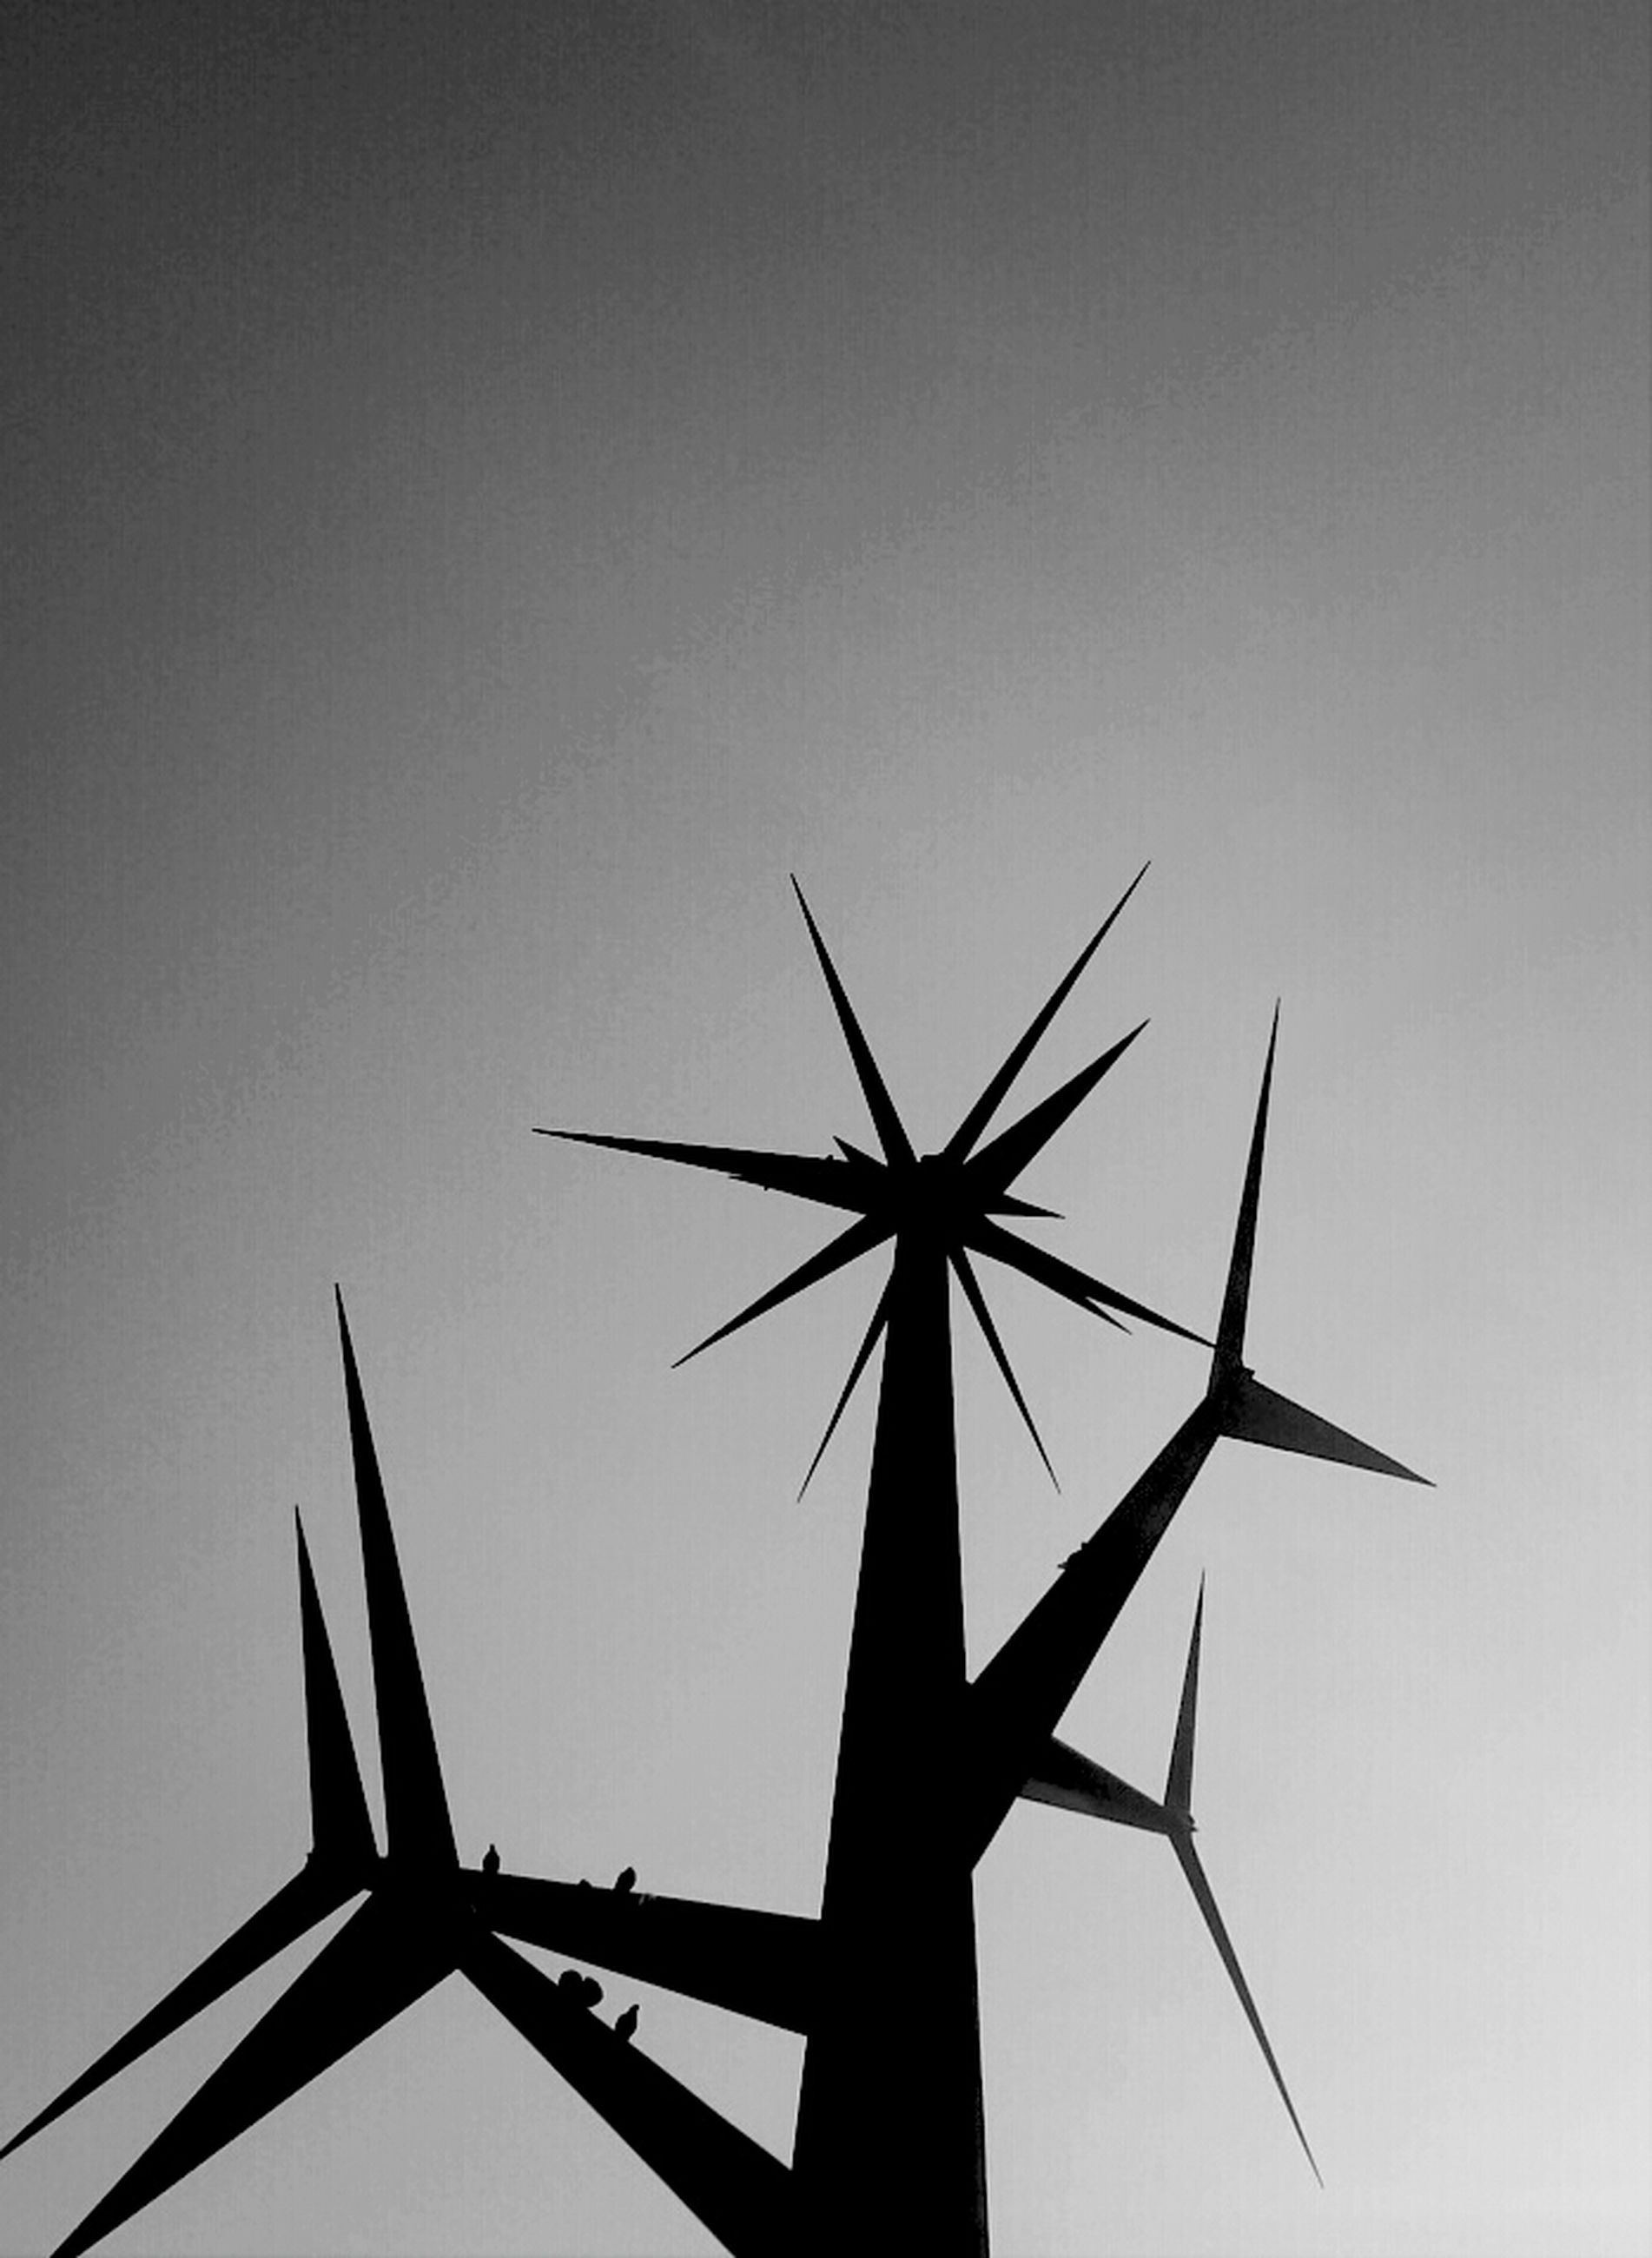 low angle view, clear sky, silhouette, fuel and power generation, alternative energy, environmental conservation, wind power, copy space, sky, technology, renewable energy, wind turbine, windmill, no people, outdoors, day, close-up, part of, traditional windmill, nature